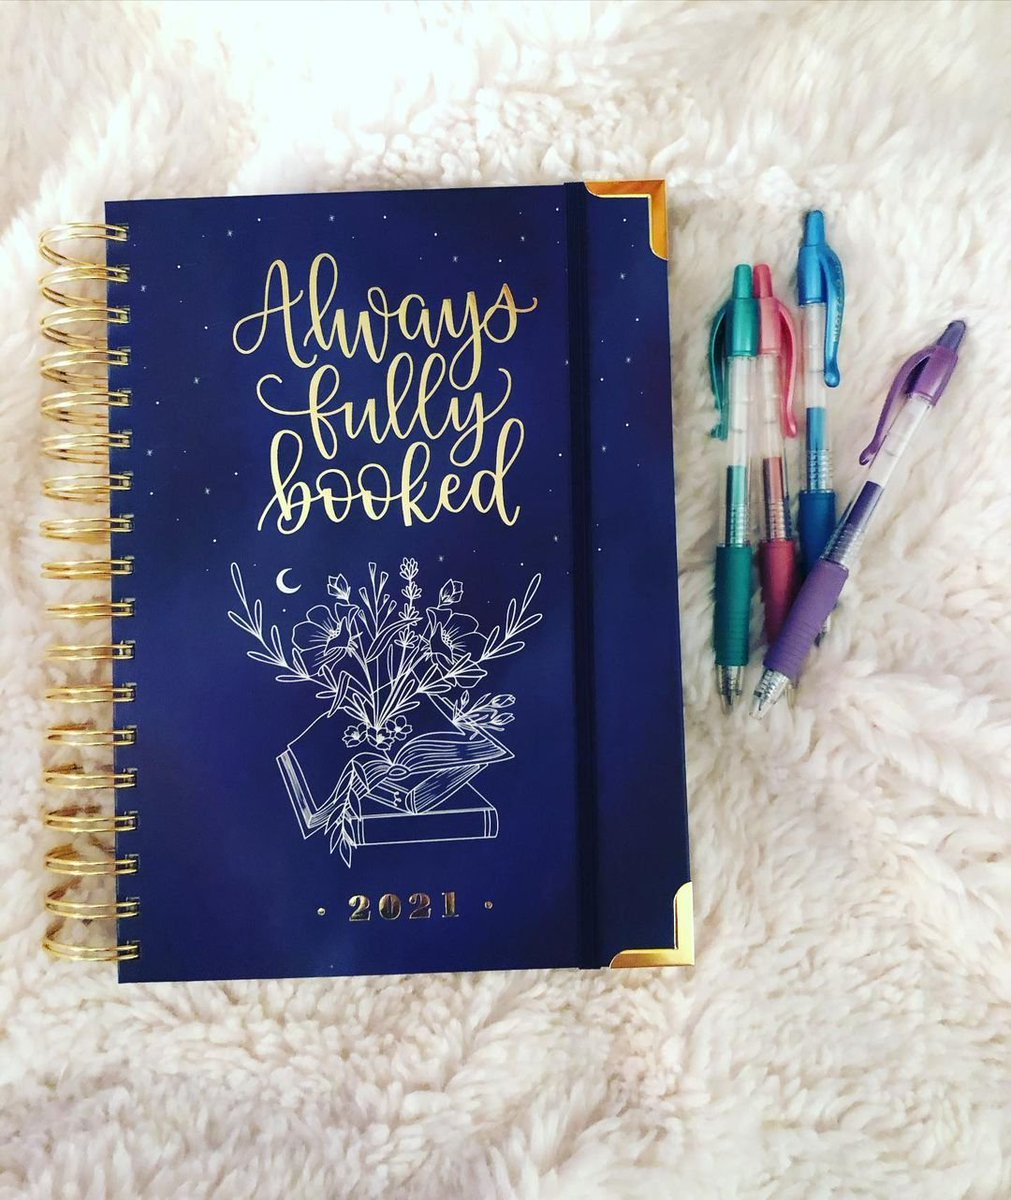 How is your 2021 planner looking so far? Keep your booked schedule beautiful with a touch of G2 Metallics! #PowerToThePen 📸: retty927